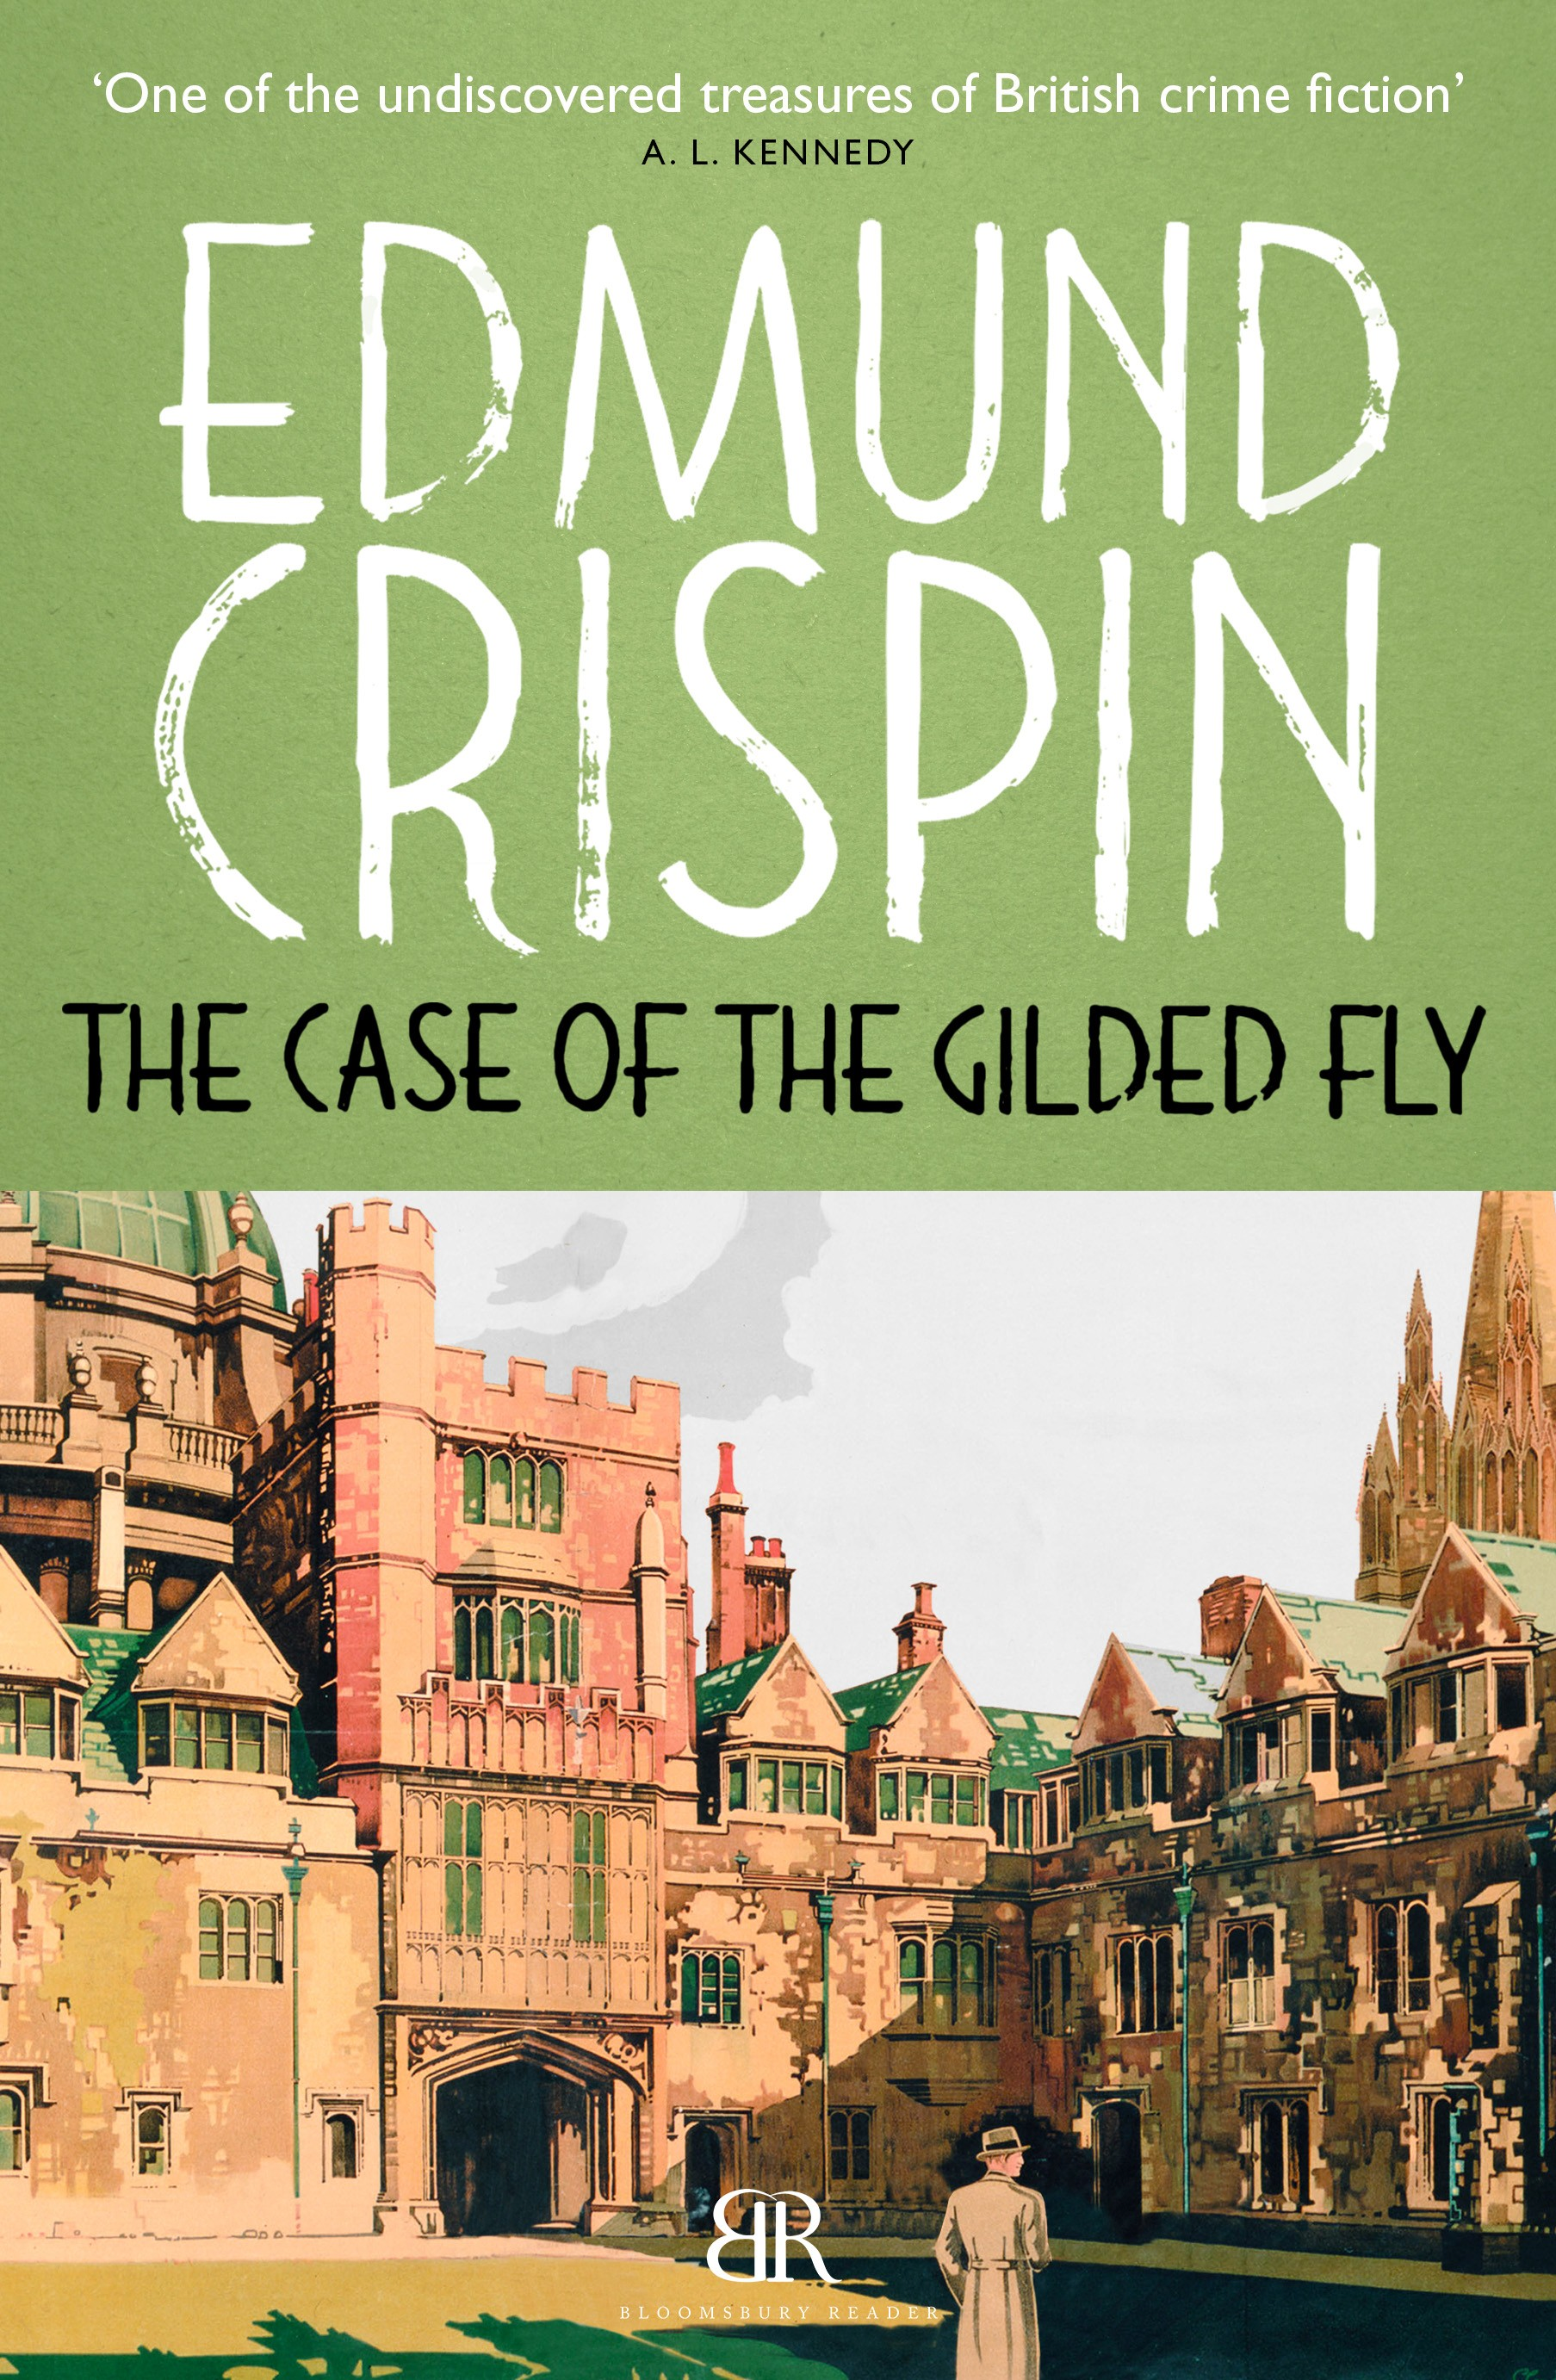 The Case of the Gilded Fly by Edmund Crispin (US only) This book was Edmund  Crispin's debut novel and it also introduced Gervase Fen to mystery lovers.